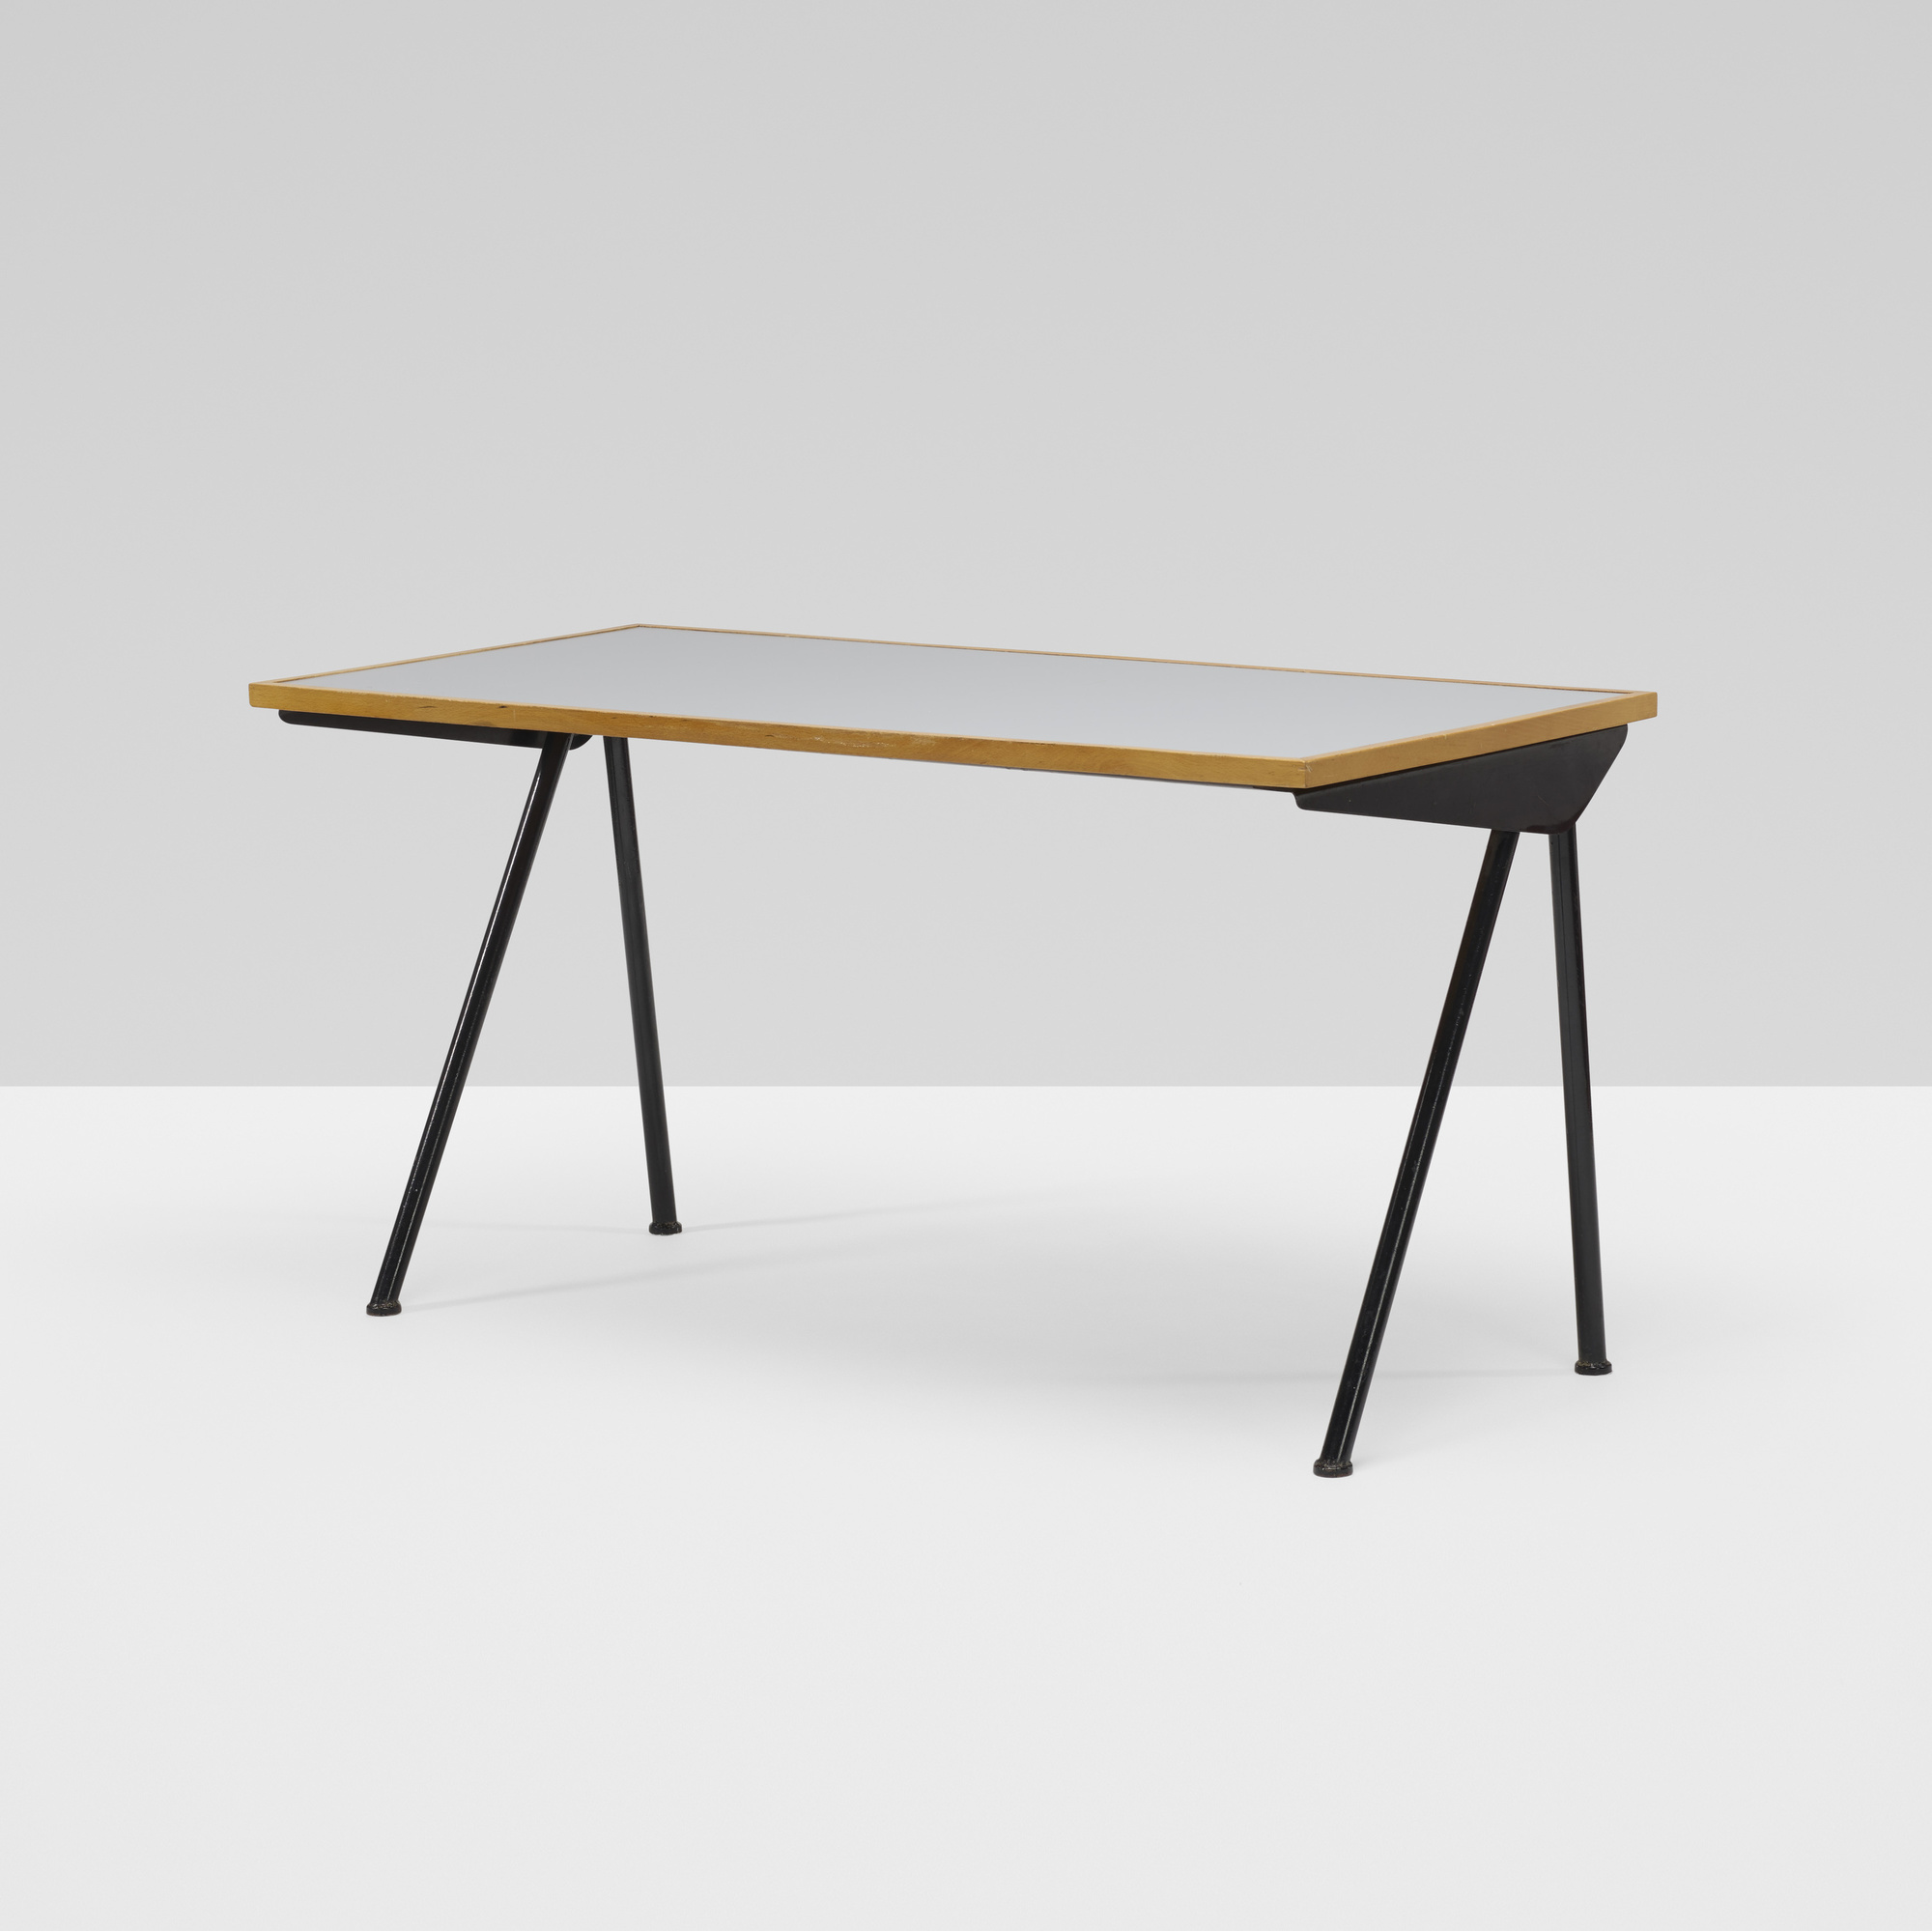 137: Jean  Prouvé / Compass desk (1 of 3)